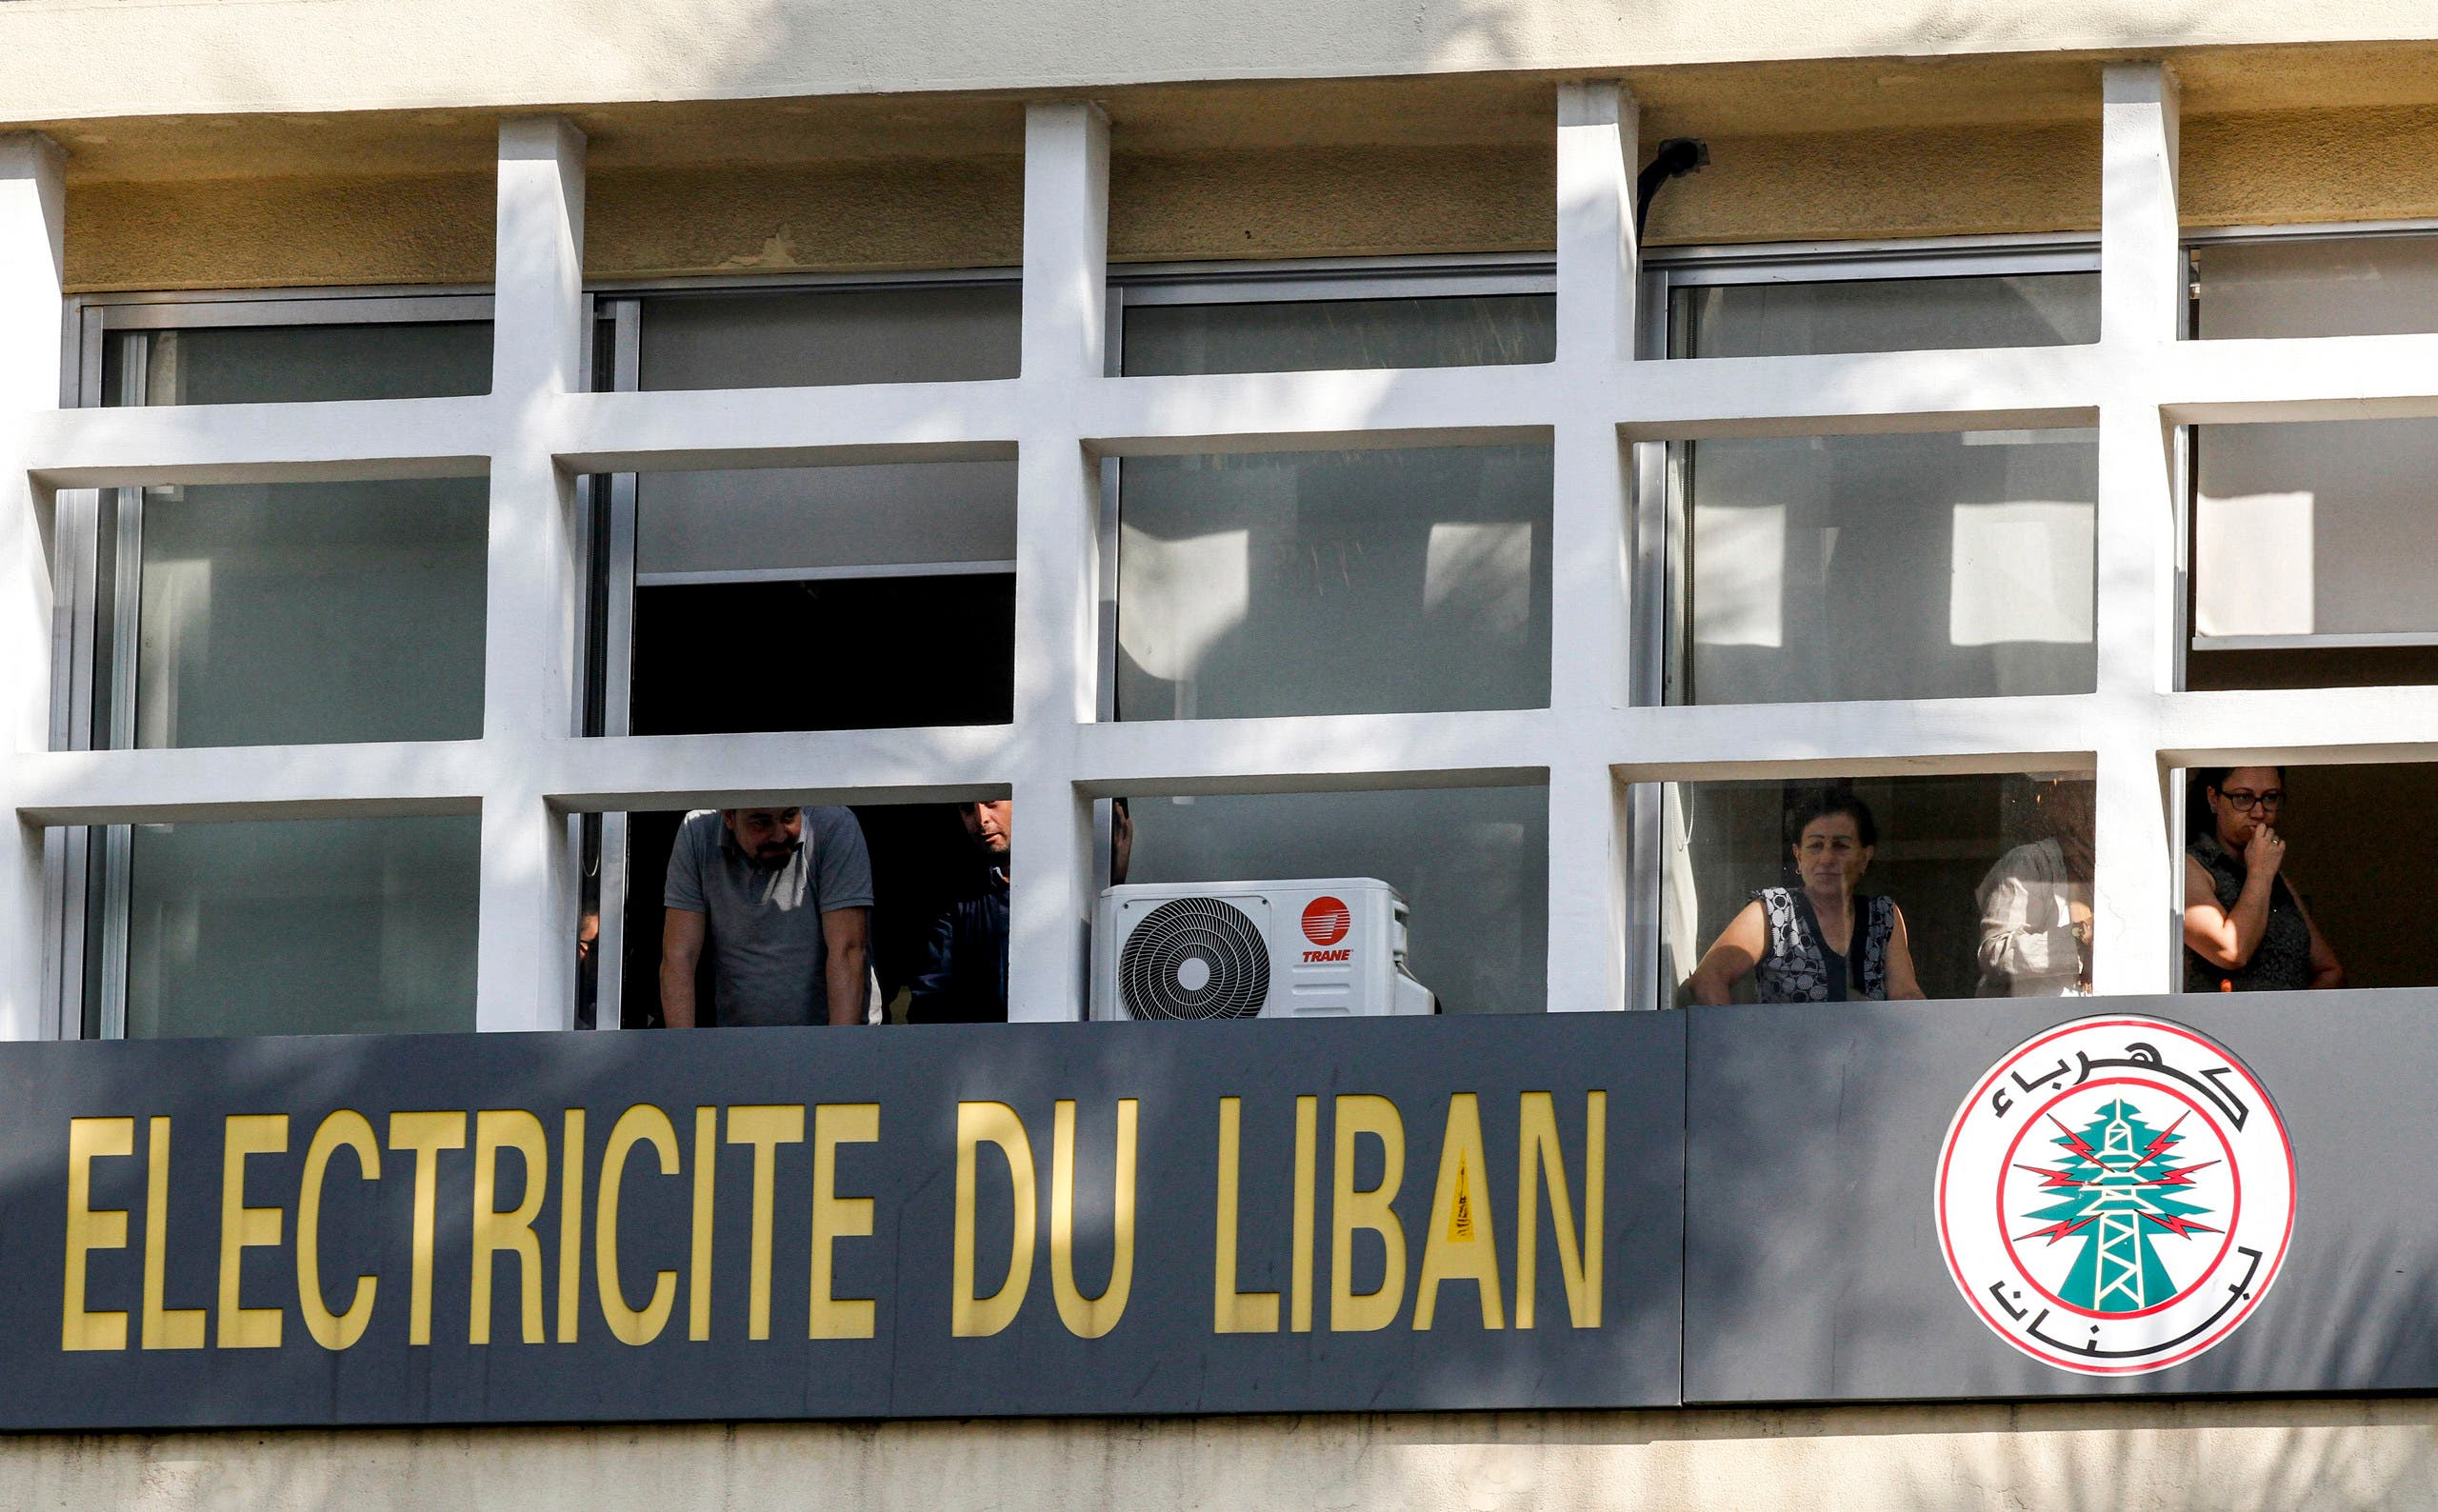 Employees of the Electricite du Liban (Electricity Of Lebanon) national company look out of their windows at students gathering for an anti-government demonstration outside, in the southern city of Sidon on November 6, 2019. (AFP)